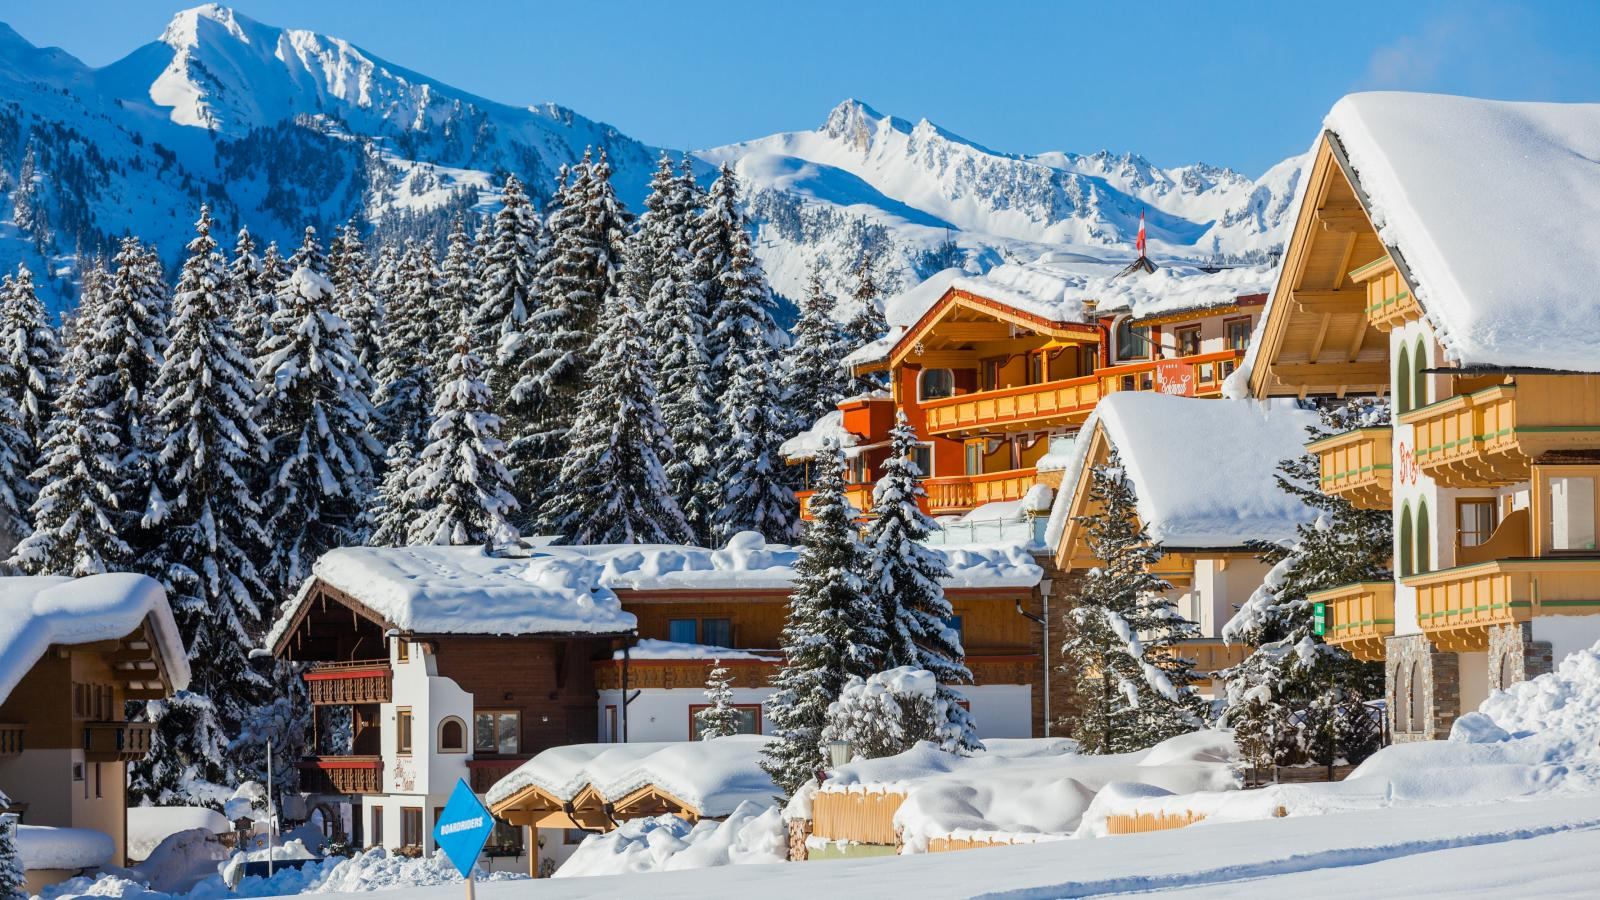 Moje skijanje 2016 2017 skiing winter vacation holidays for Winter vacations in us